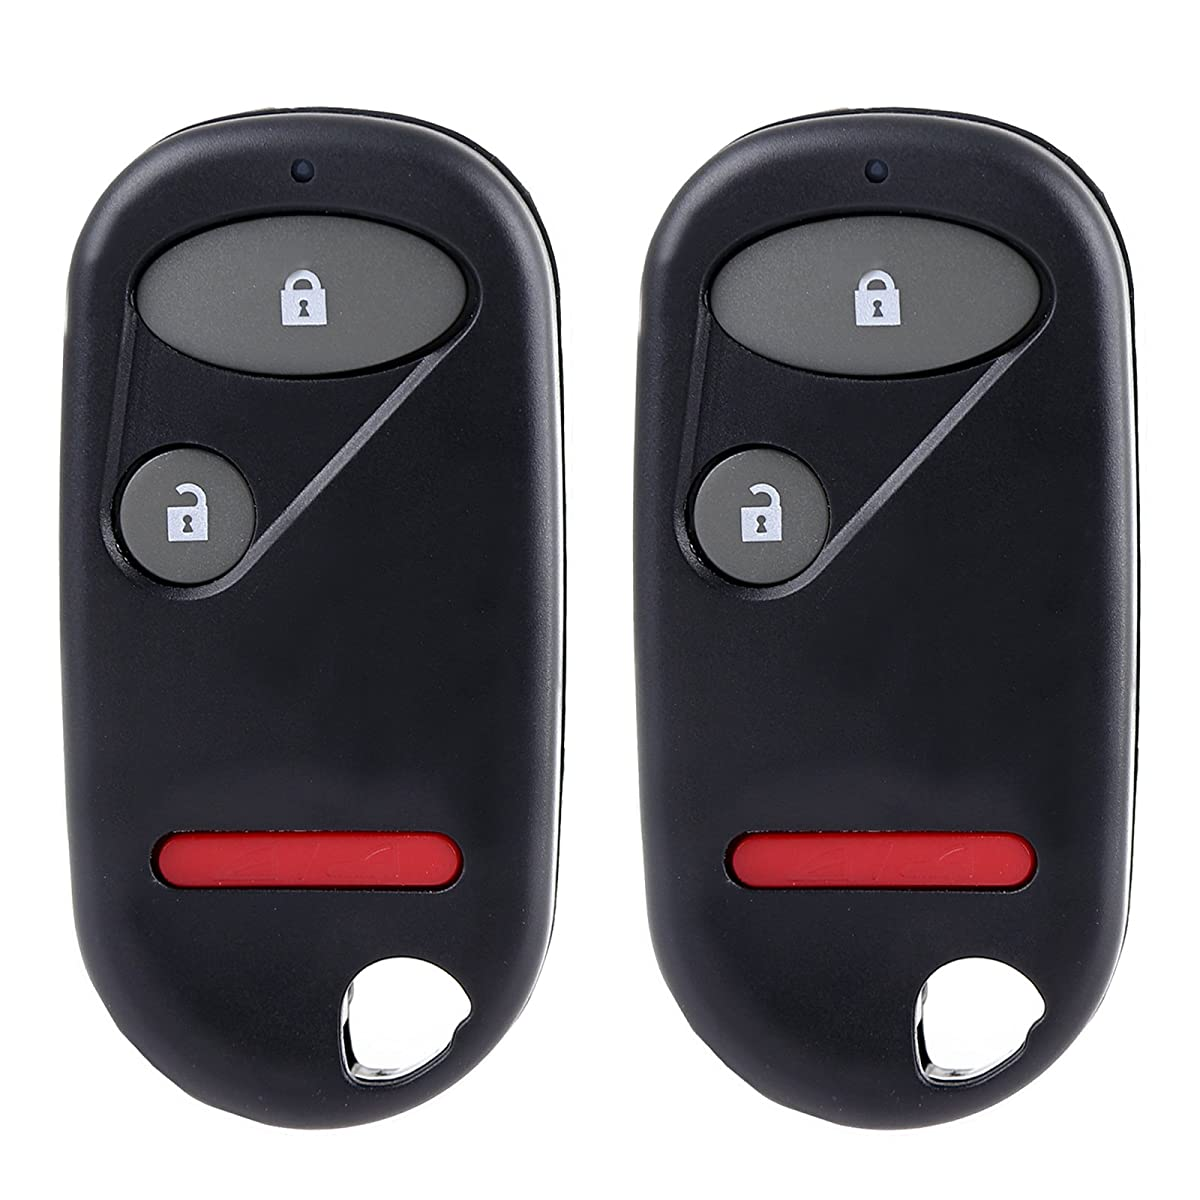 ECCPP Replacement fit for Keyless Entry Remote Key Fob Honda Civic/Honda Pilot NHVWB1U523 NHVWB1U521 (Pack of 2)